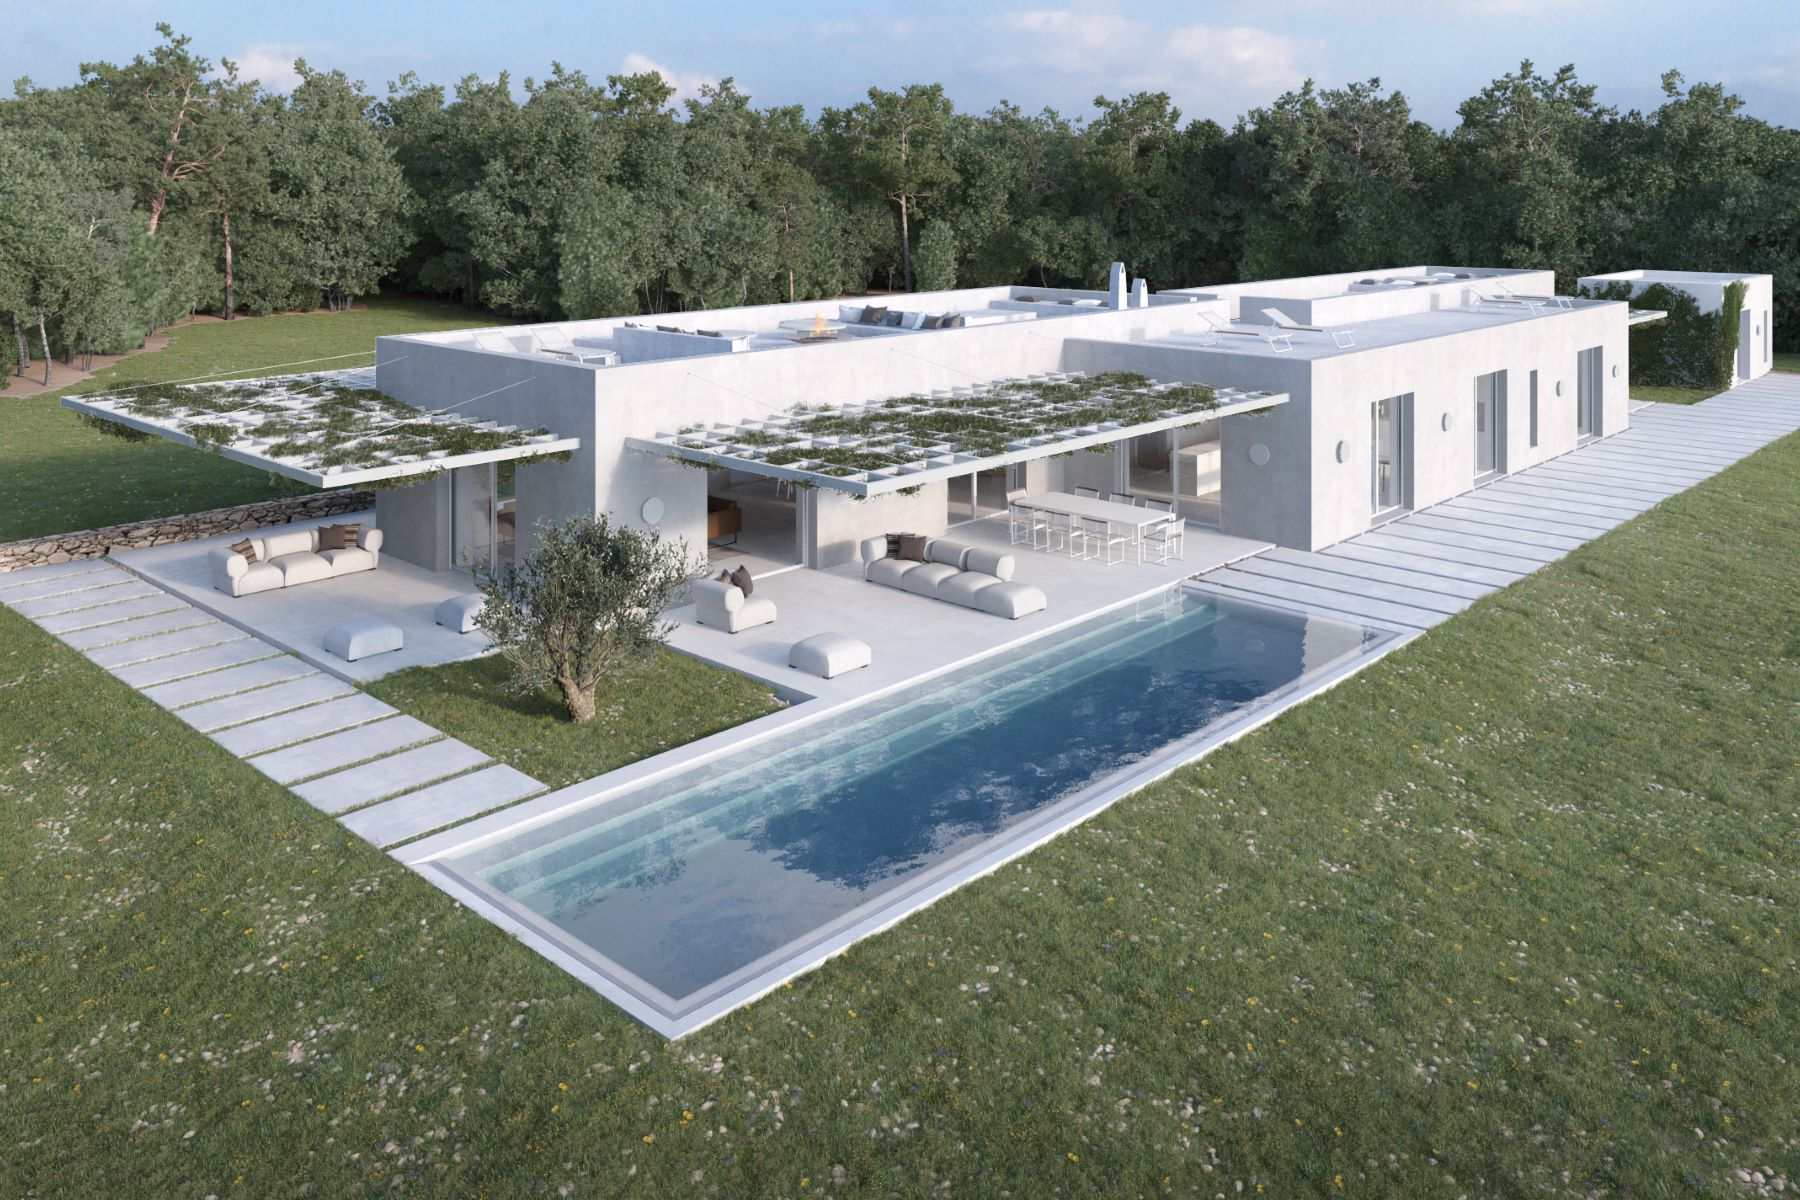 Single Family Homes for Sale at Distinctive Modern Home with Sea View in Cap de Barbaria, Formentera Formentera Formentera, Balearic Islands 07860 Spain